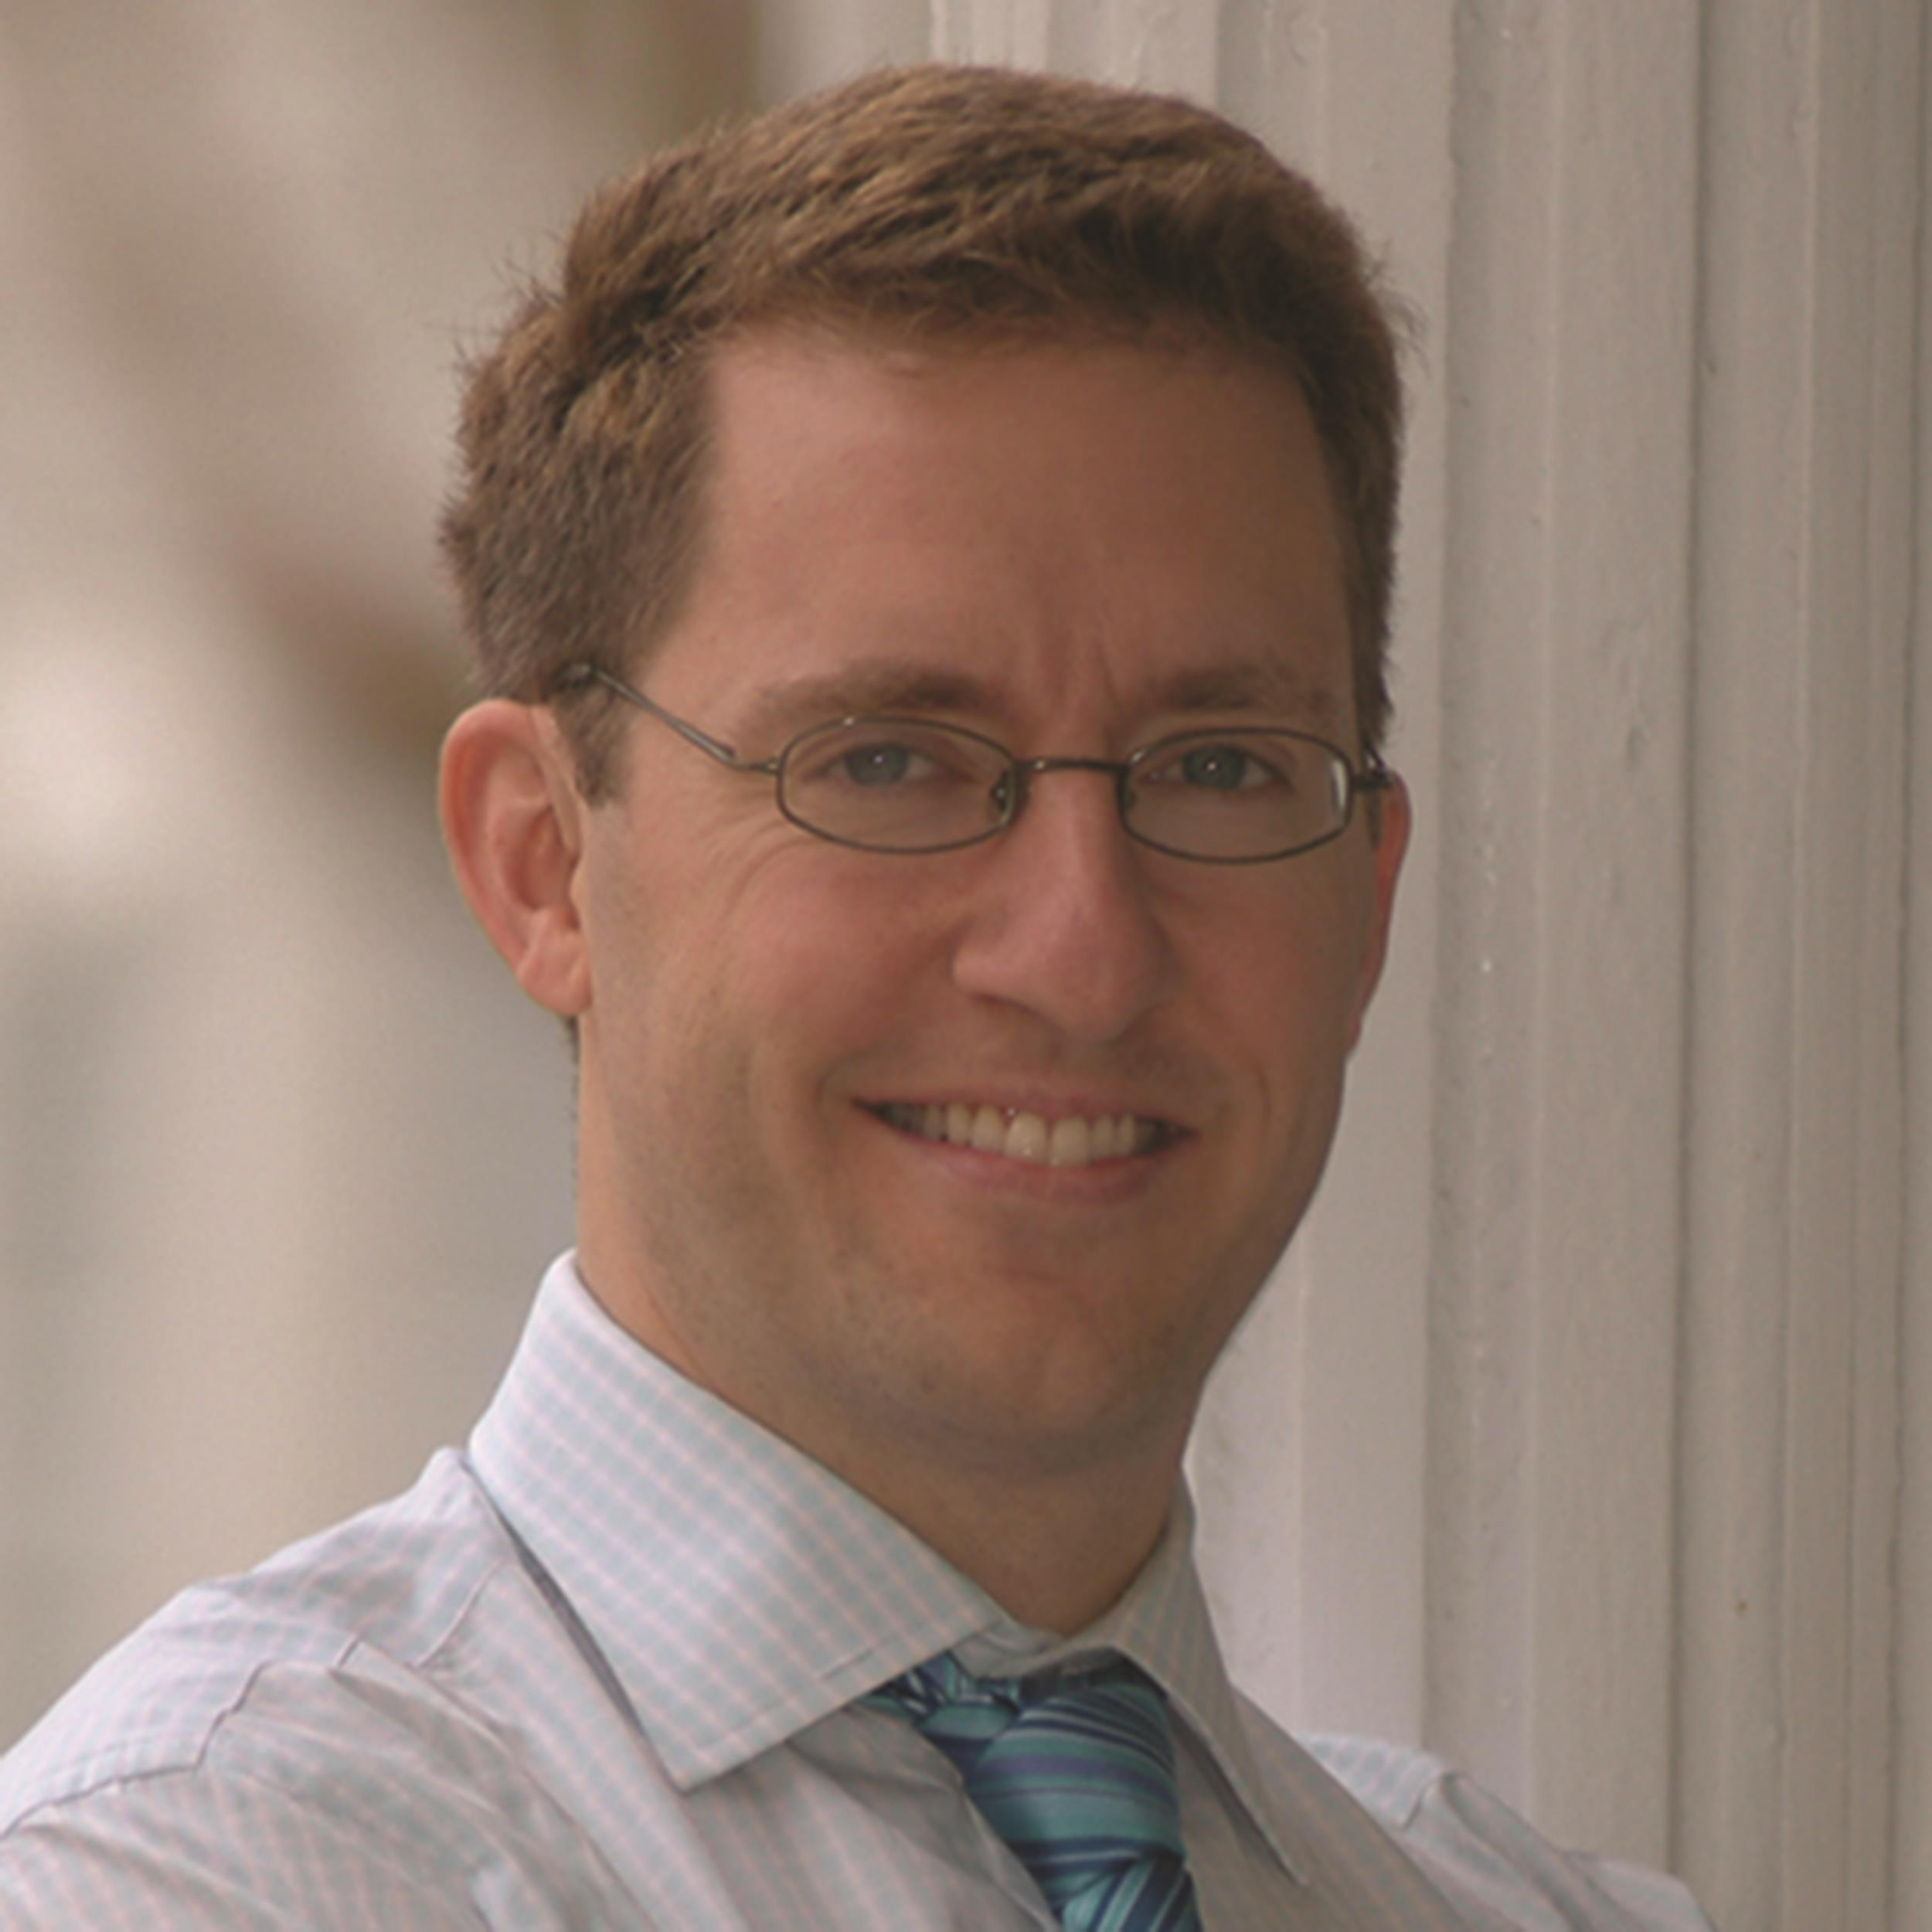 Image: Florida State University law professor Dan Markel was fatally shot in his Tallahassee home on July 25